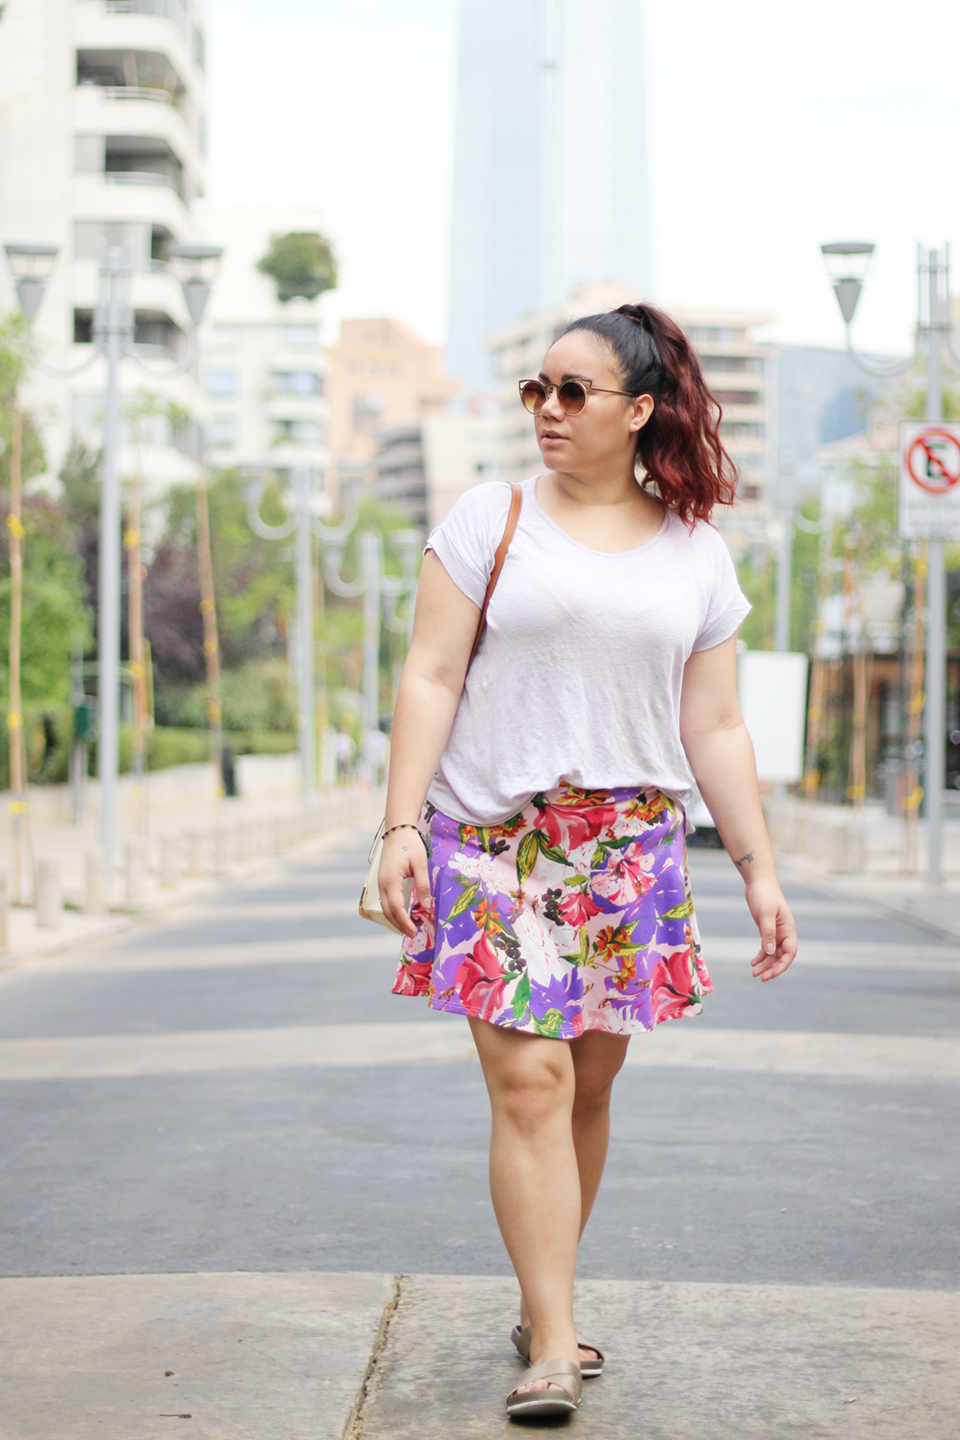 summer-outfit-pastels-pantone-color-of-the-year-purple-flowers-mini-skirt-golden-sandals-call-it-spring-blogger-mexicana-golden-strokes